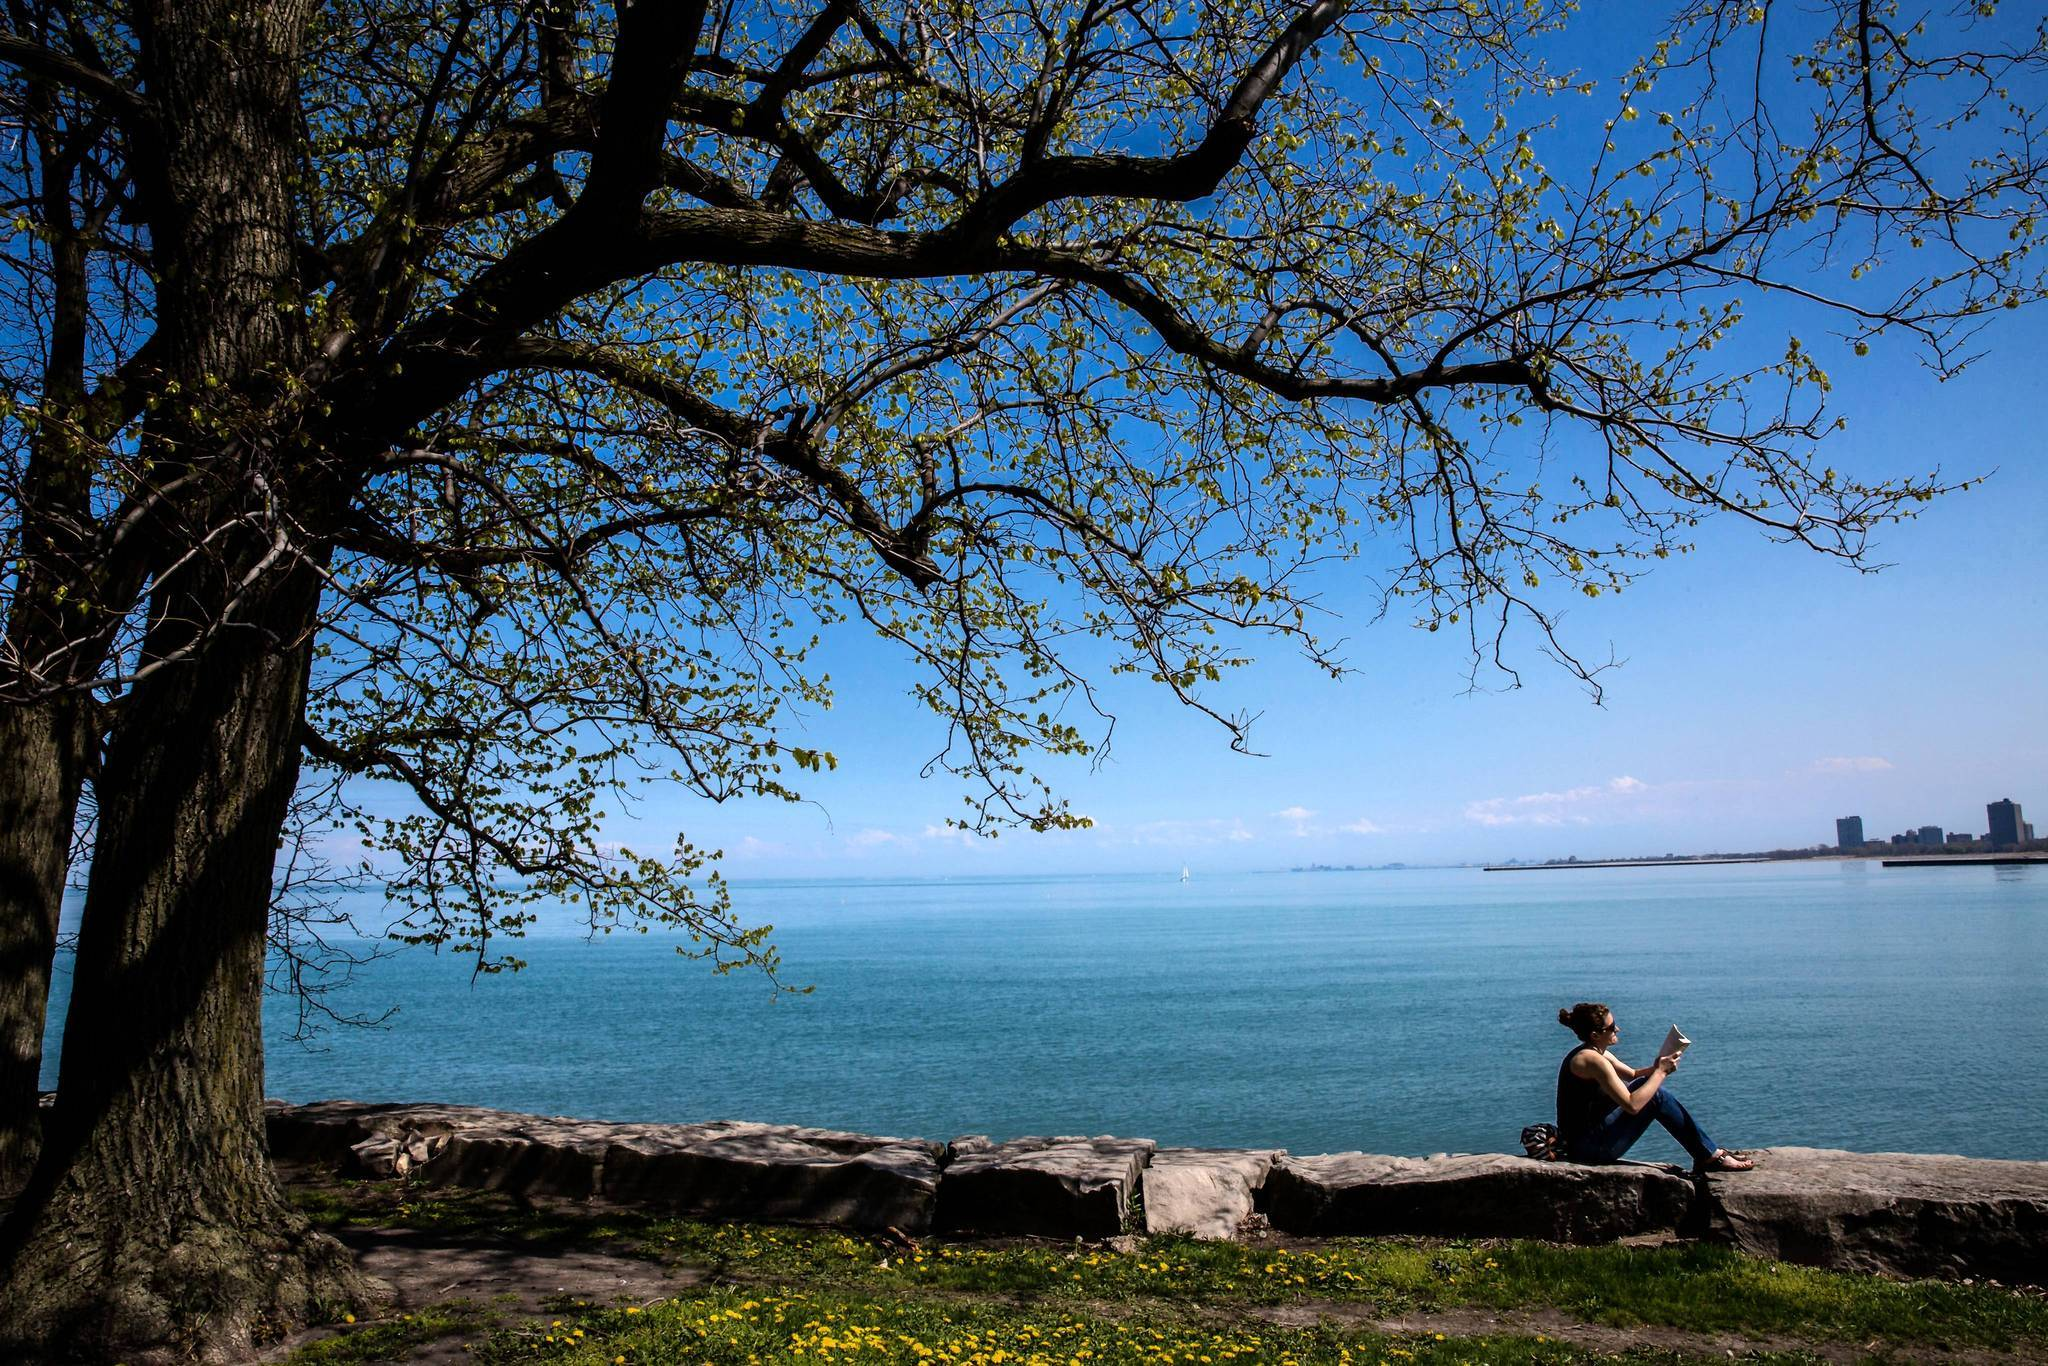 Jessie Newton reads a book at Promontory Point in Hyde Park in Chicago on Wednesday, May 8, 2013.